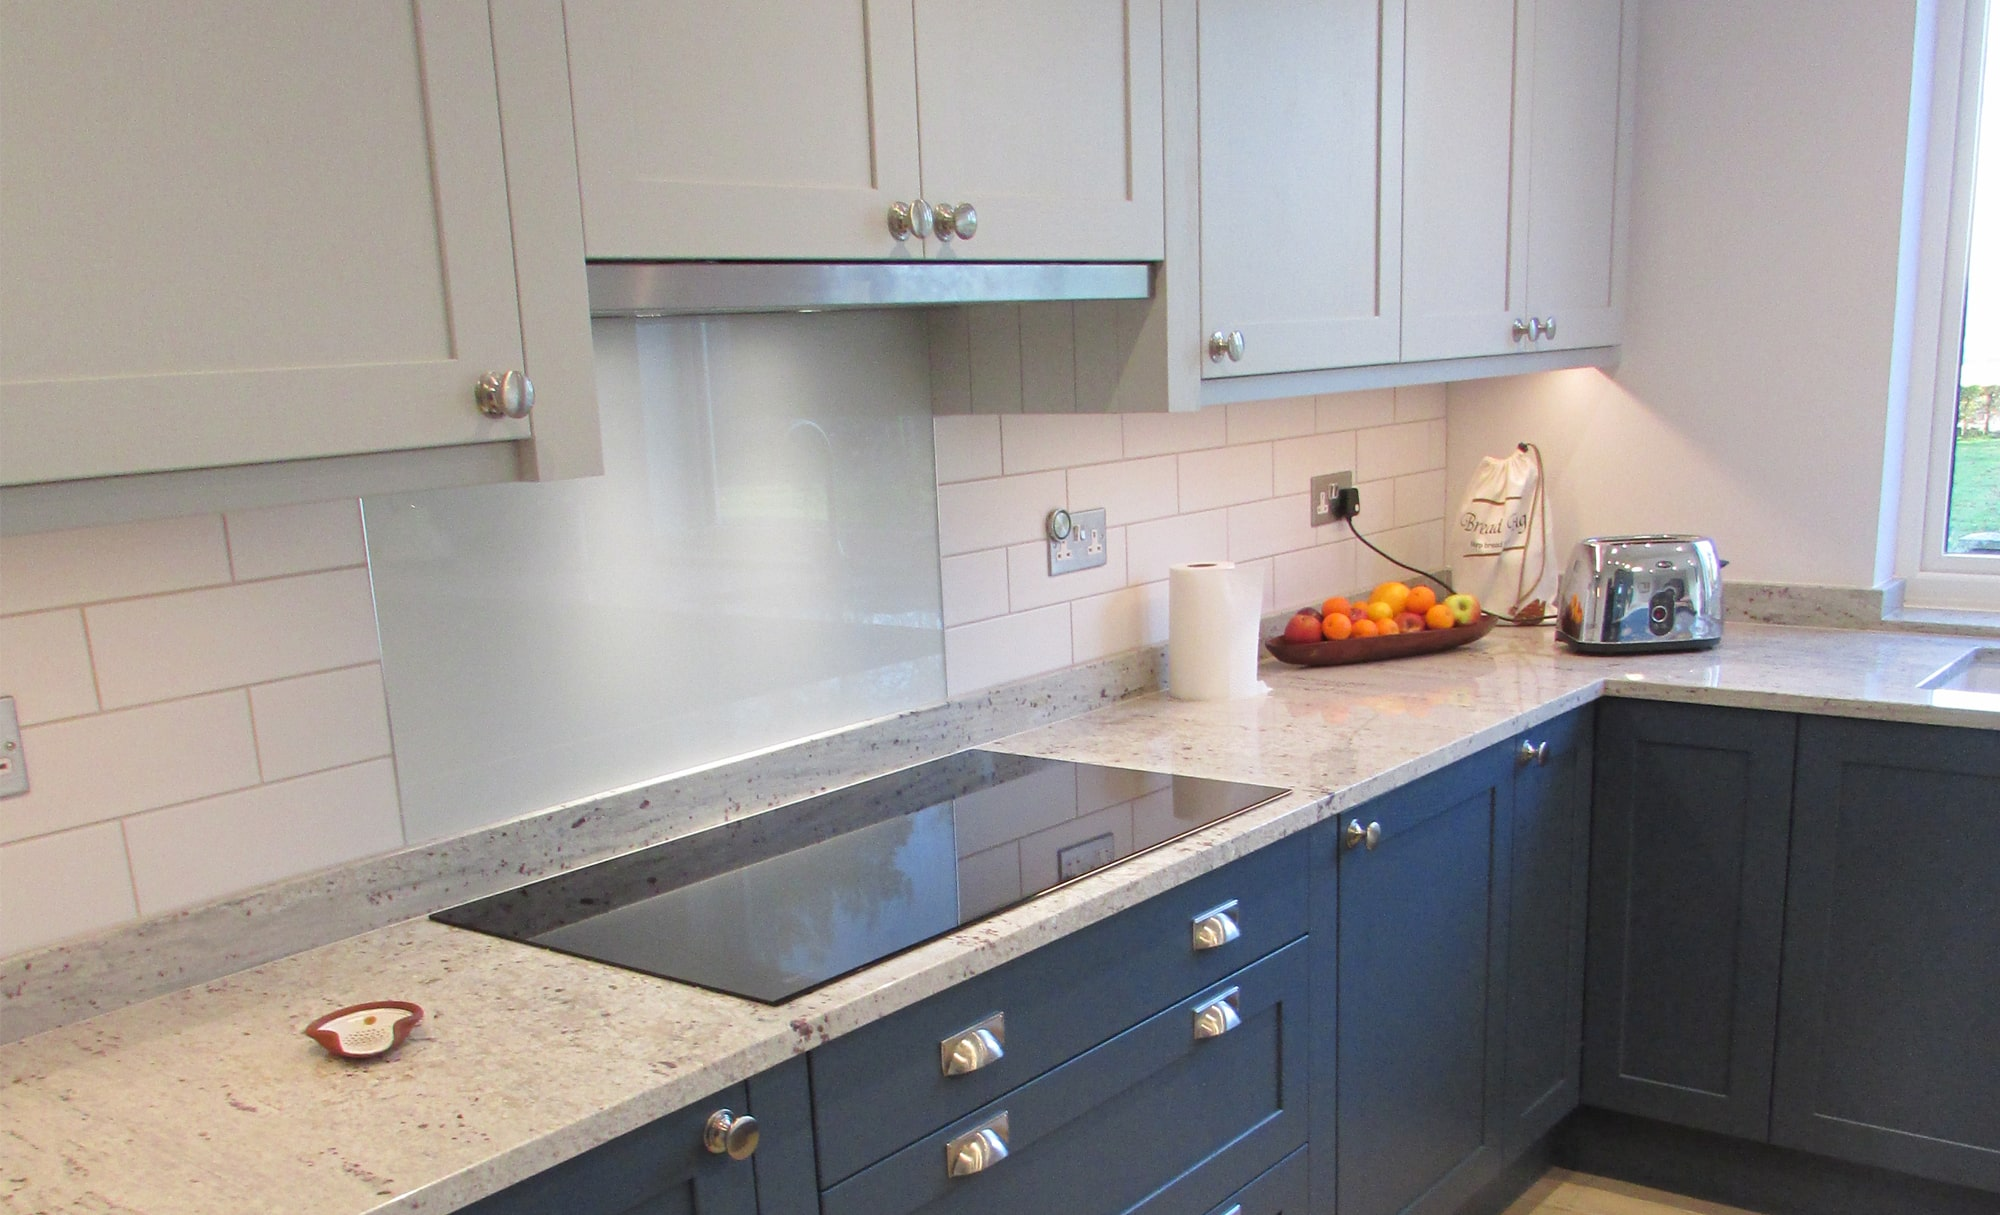 Kitchen Stori Aldana Light Grey & Airforce Kitchen by Grays Fitted Furniture Hob